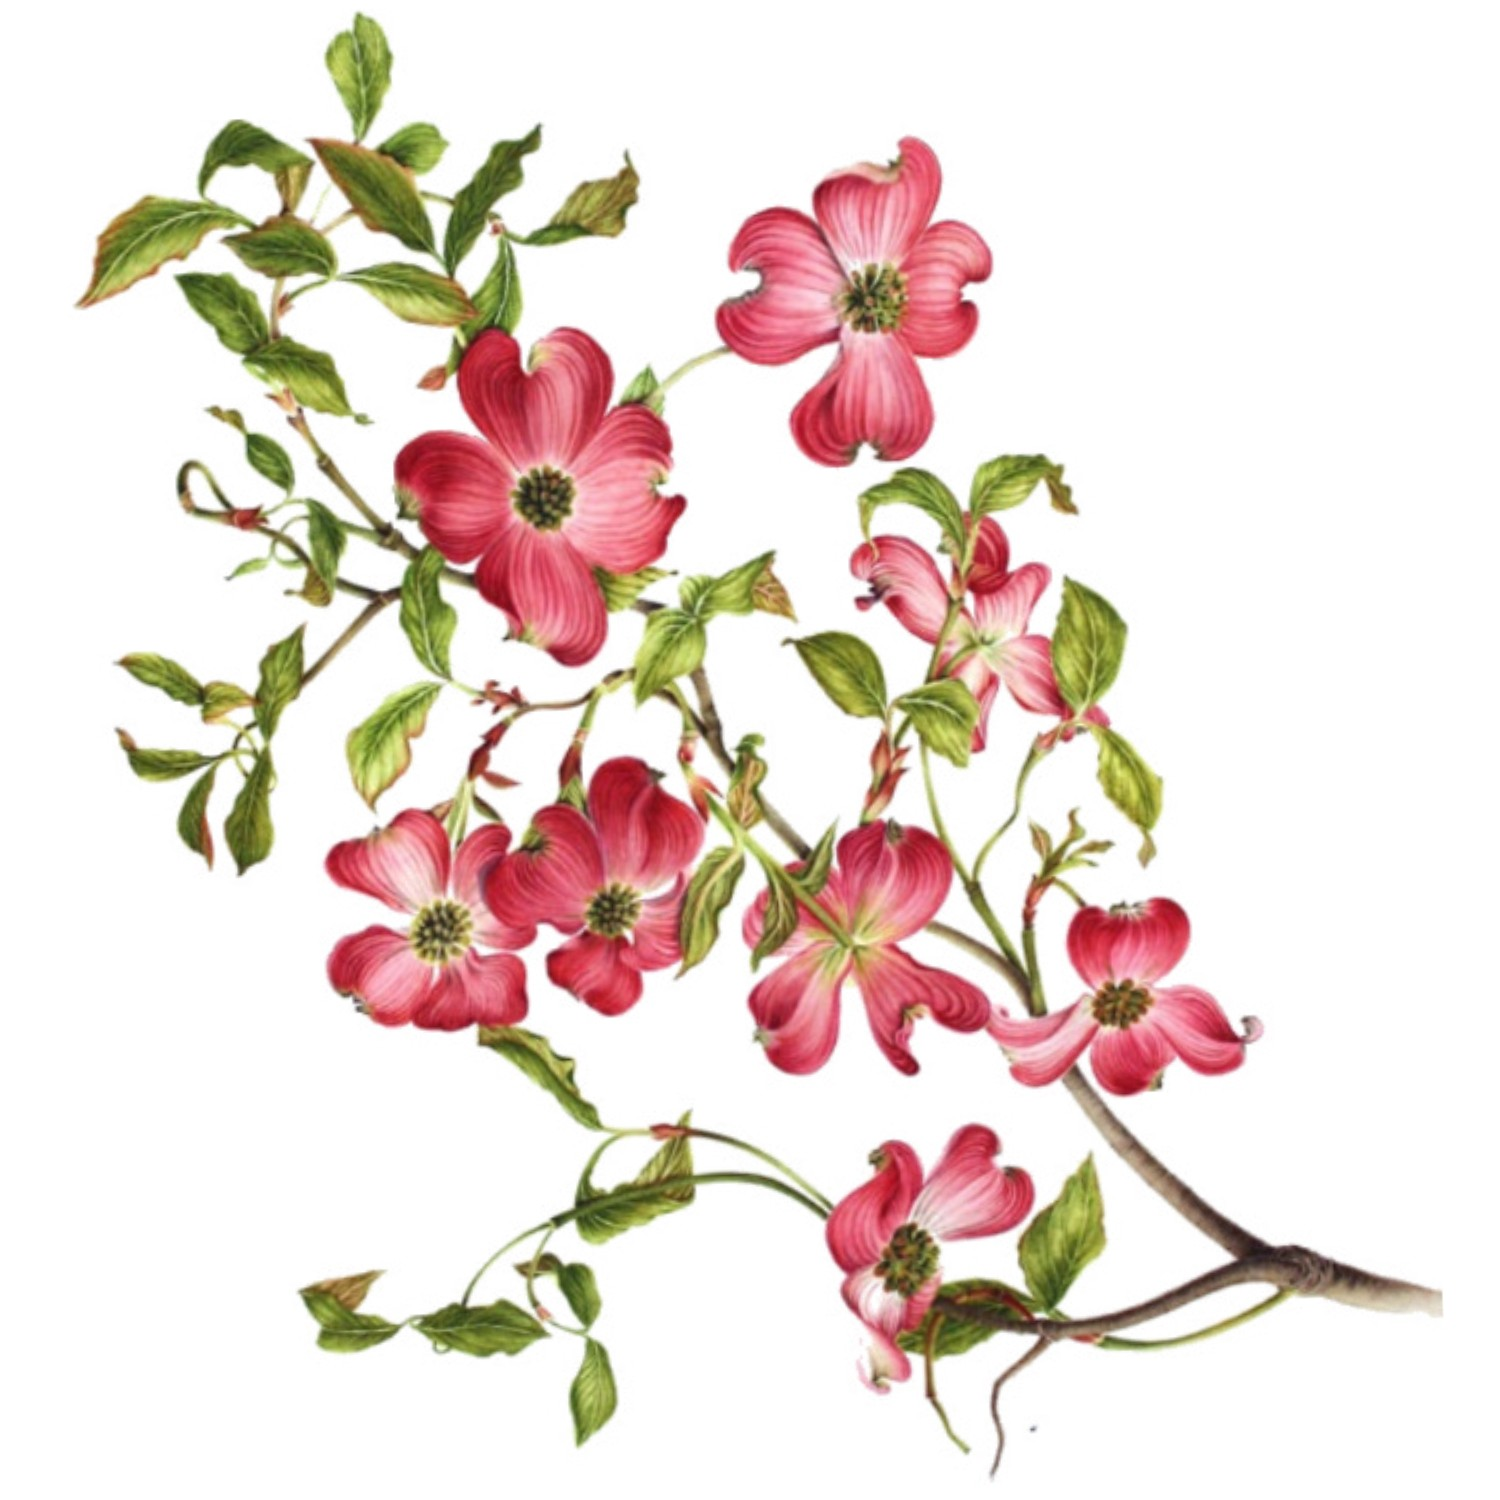 Dogwood Tree Clipart.